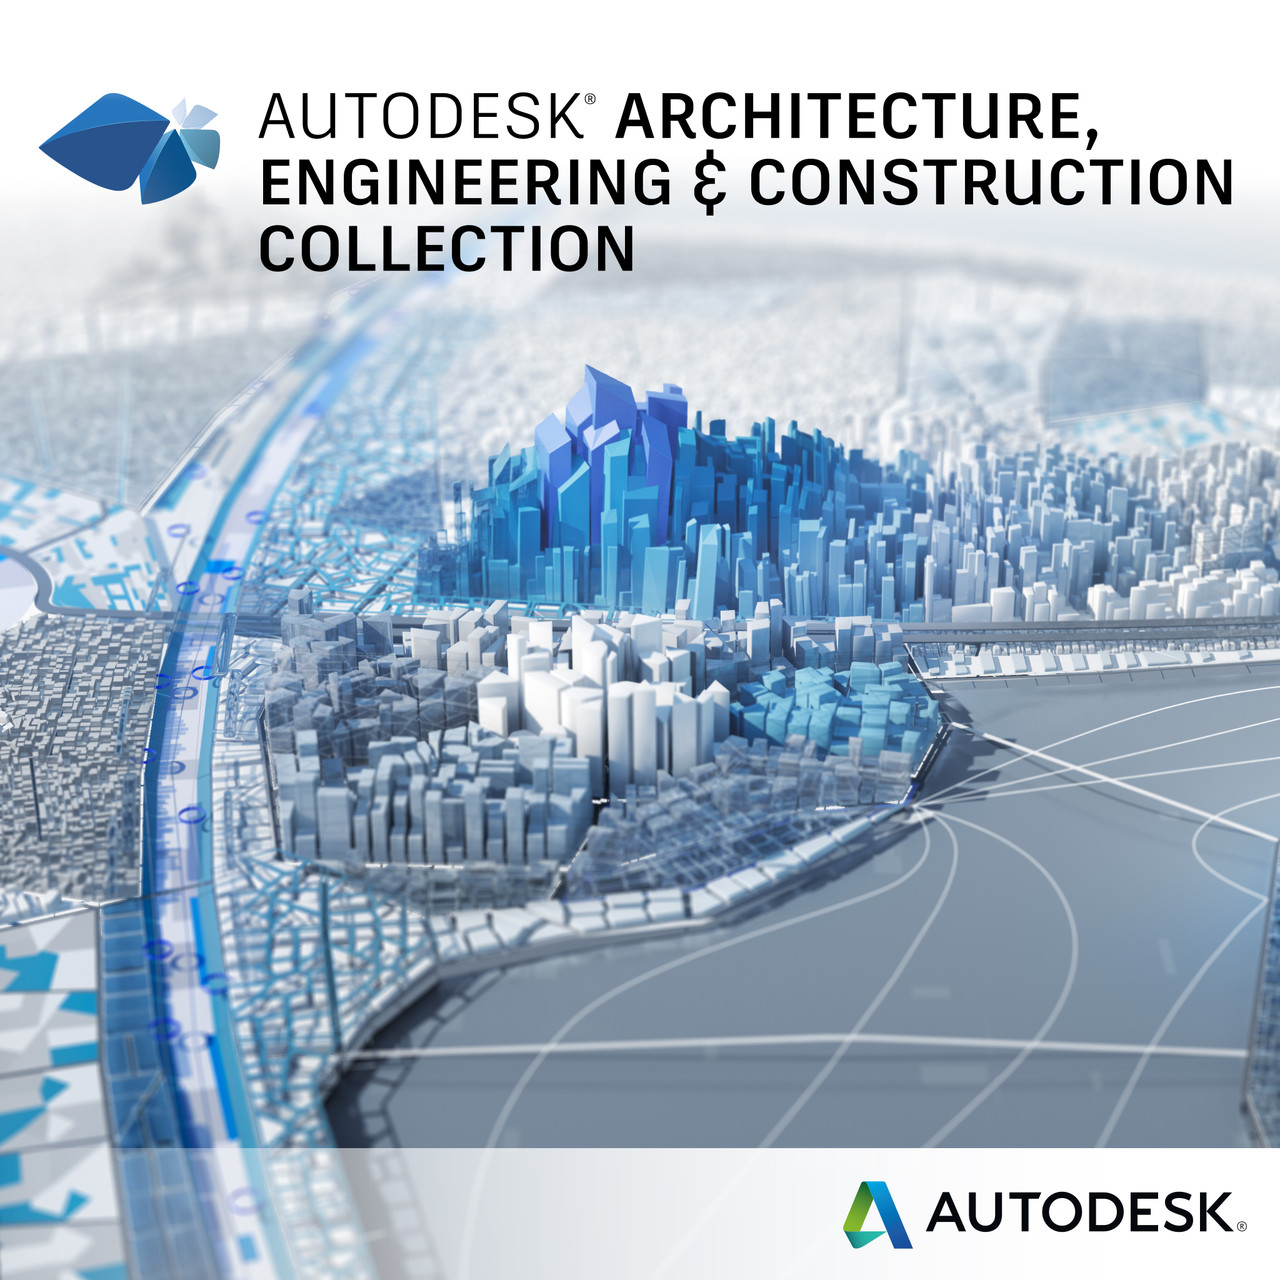 Autodesk Architecture Engineering & Construction Collection